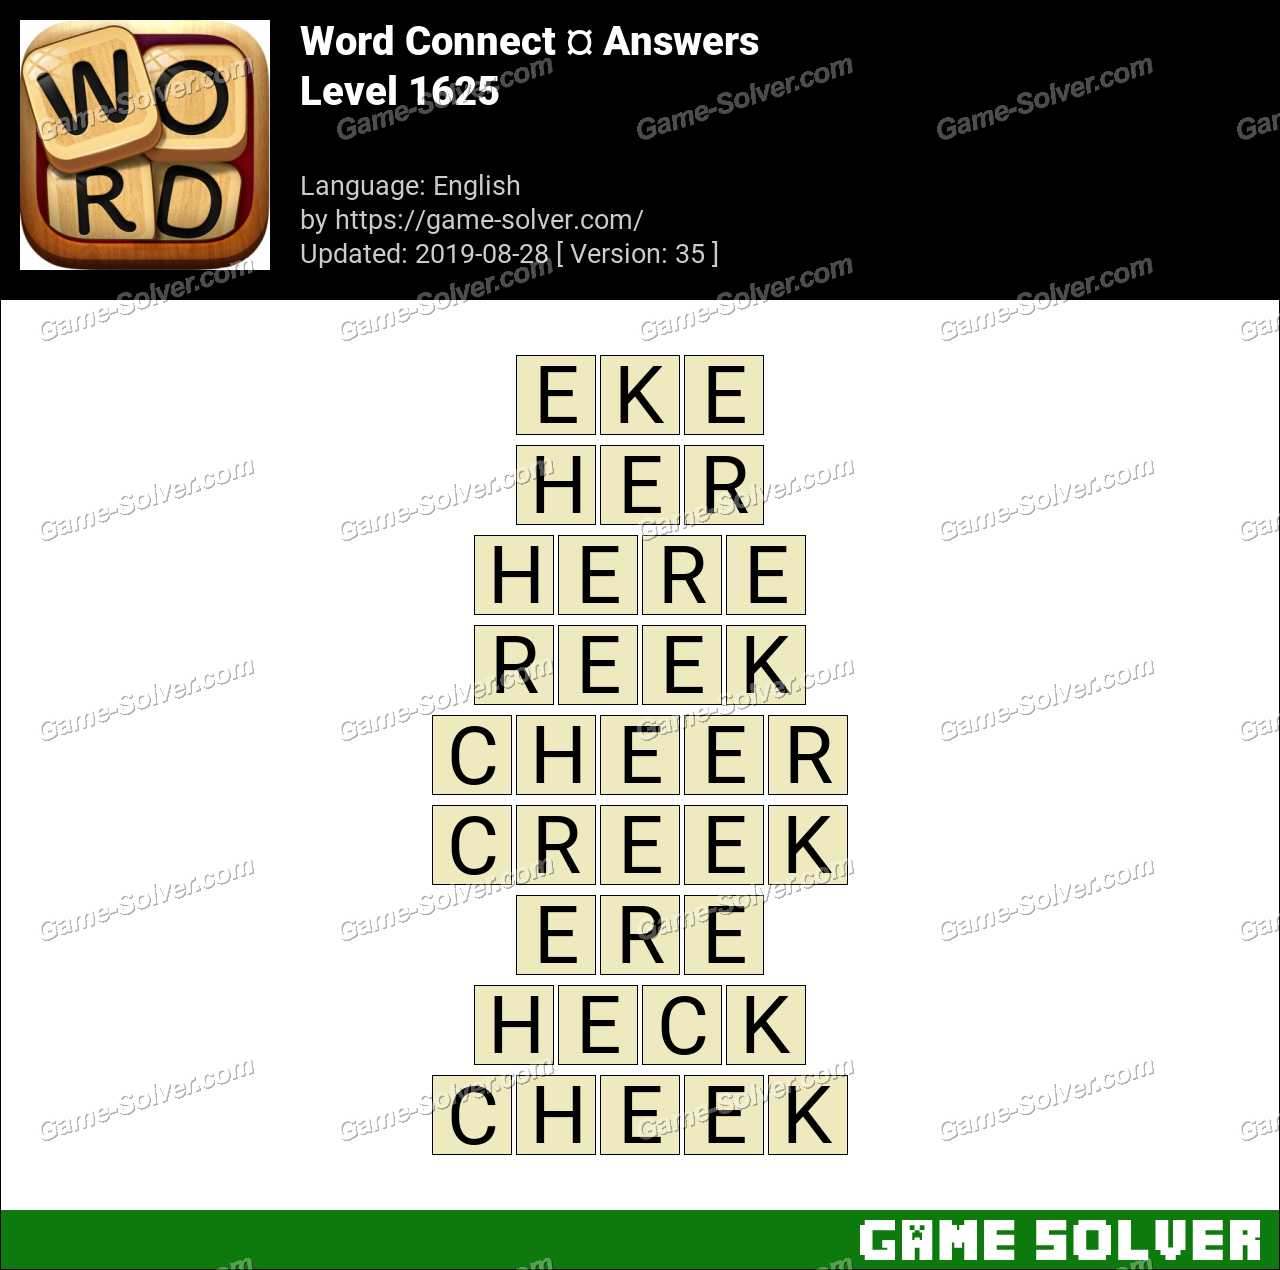 Word Connect Level 1625 Answers